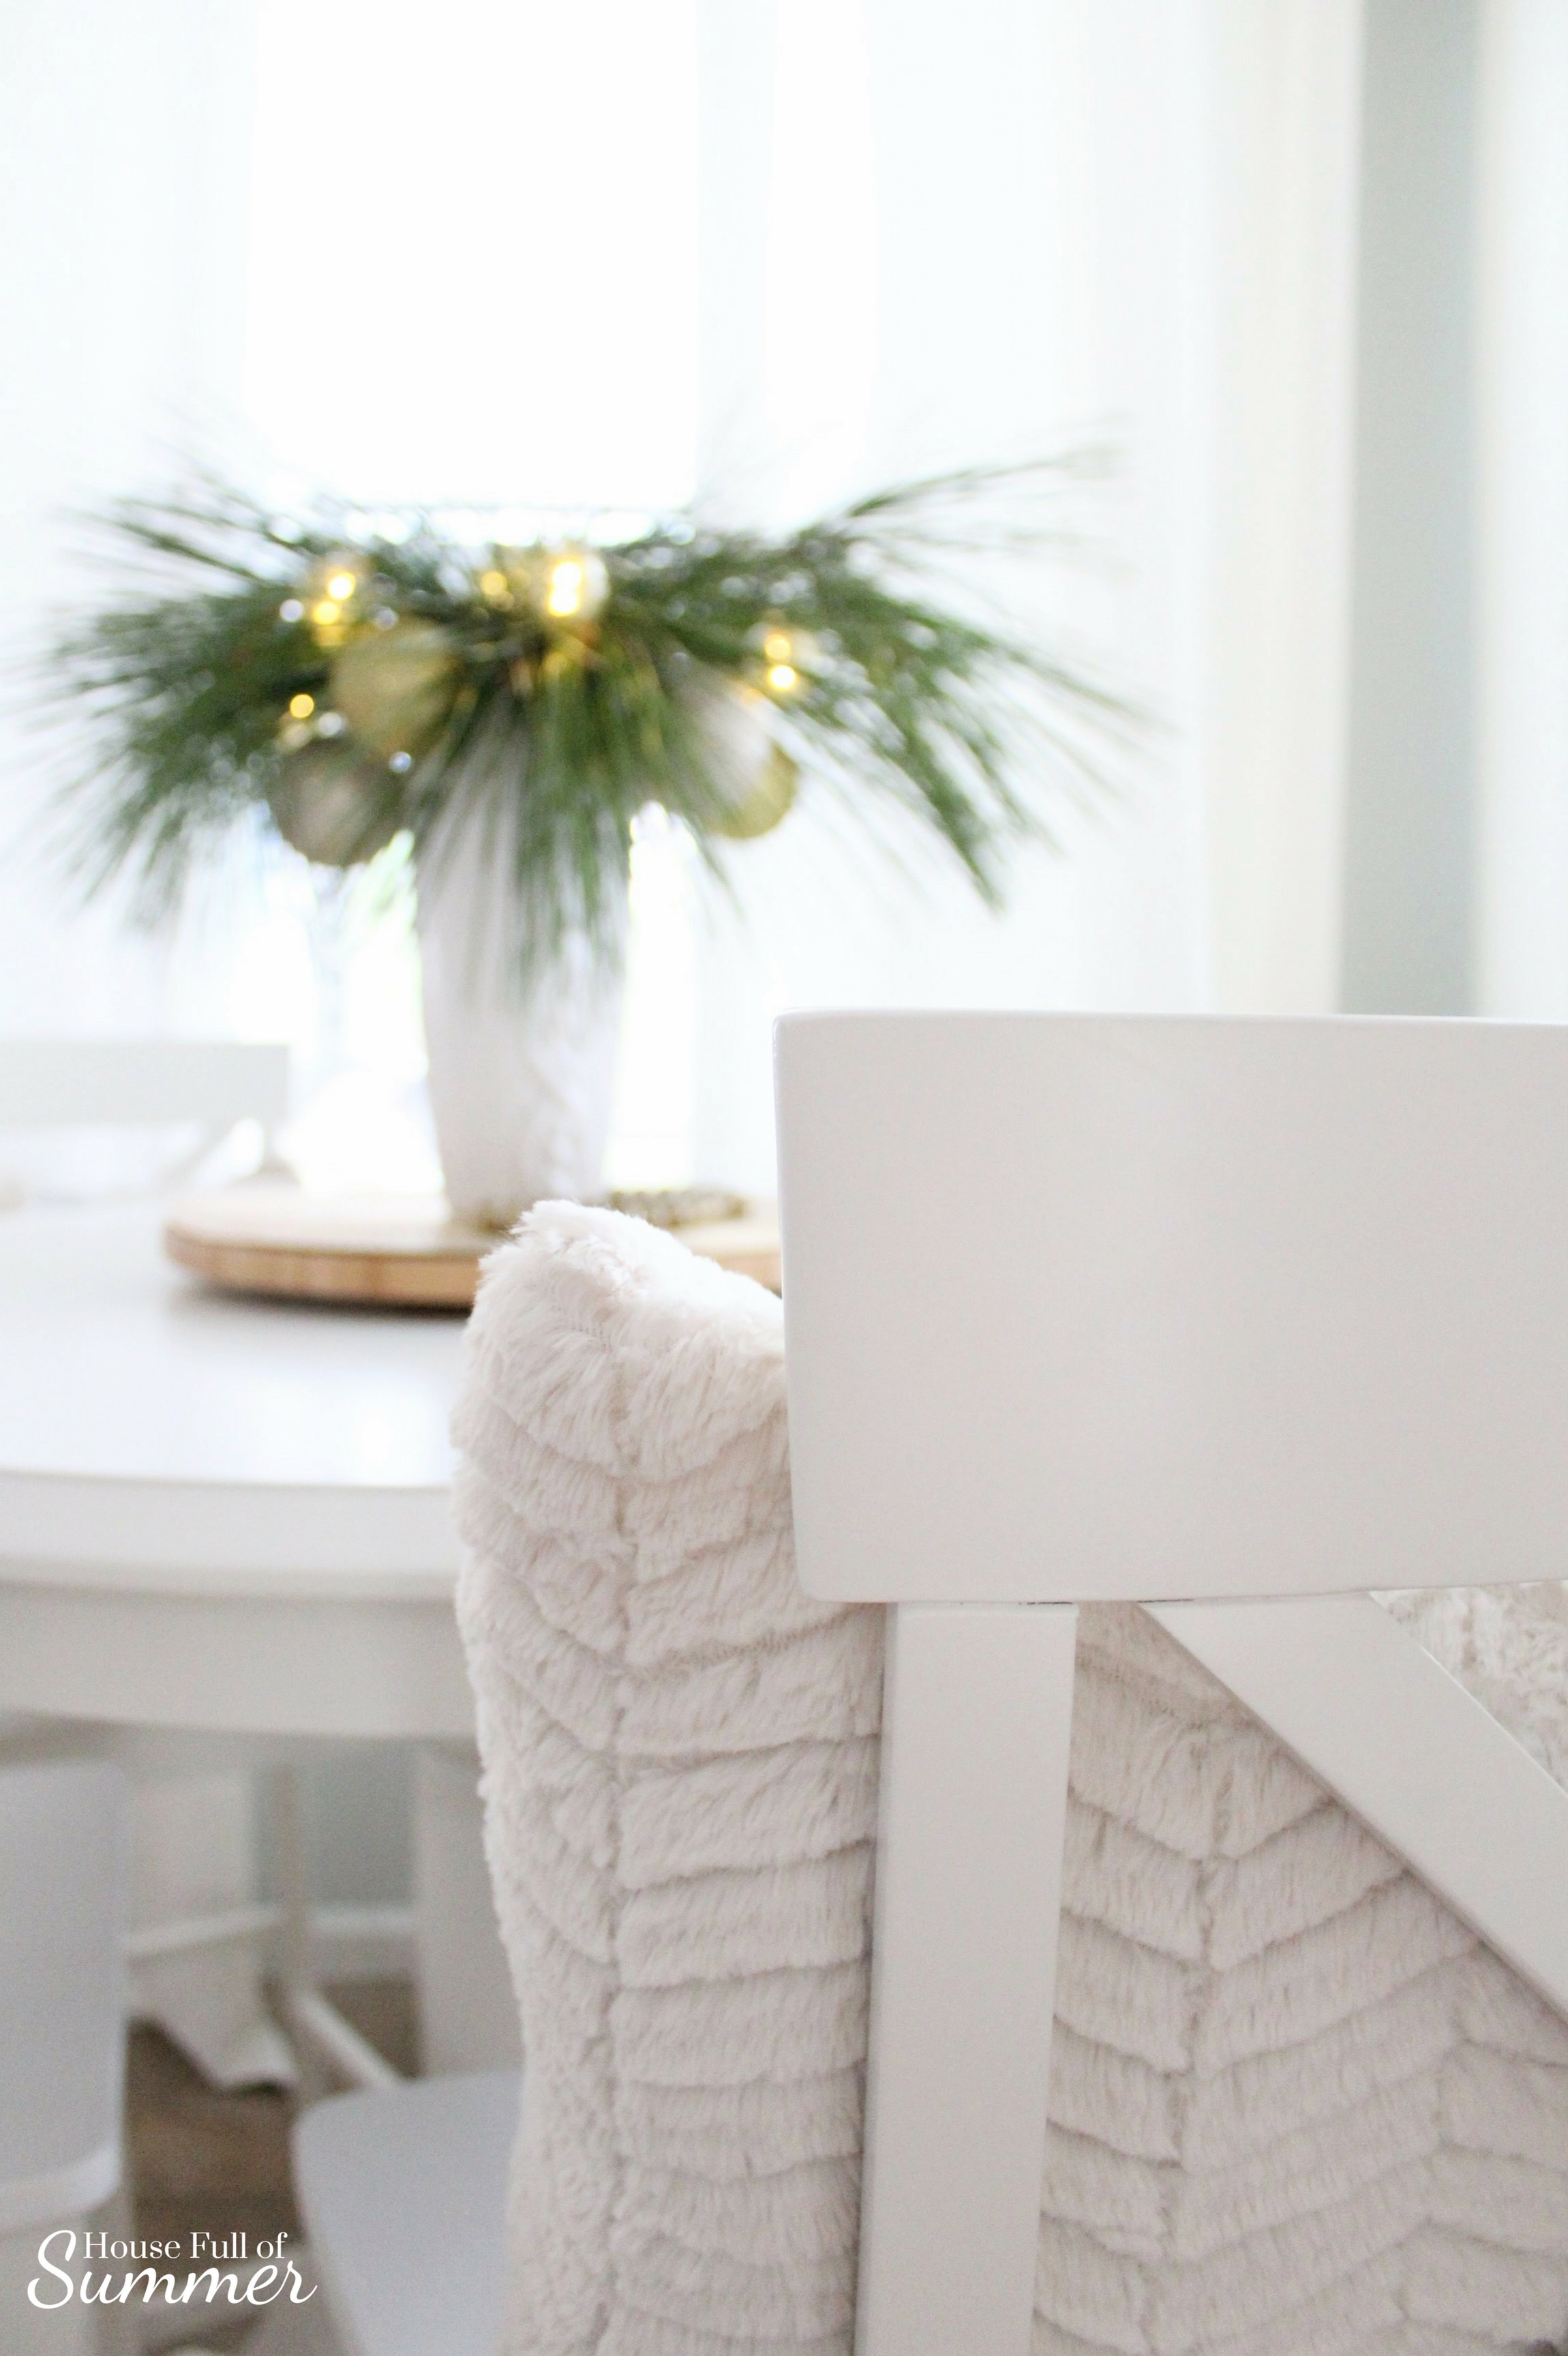 Classy Christmas Home Tour {Part Two} | House Full of Summer blog - white breakfast nook, counter height table, diy greenery centerpiece, christmas table decor, diy christmas decor ideas, coastal christmas decor, beach house, neutral christmas decor, winter centerpiece ideas